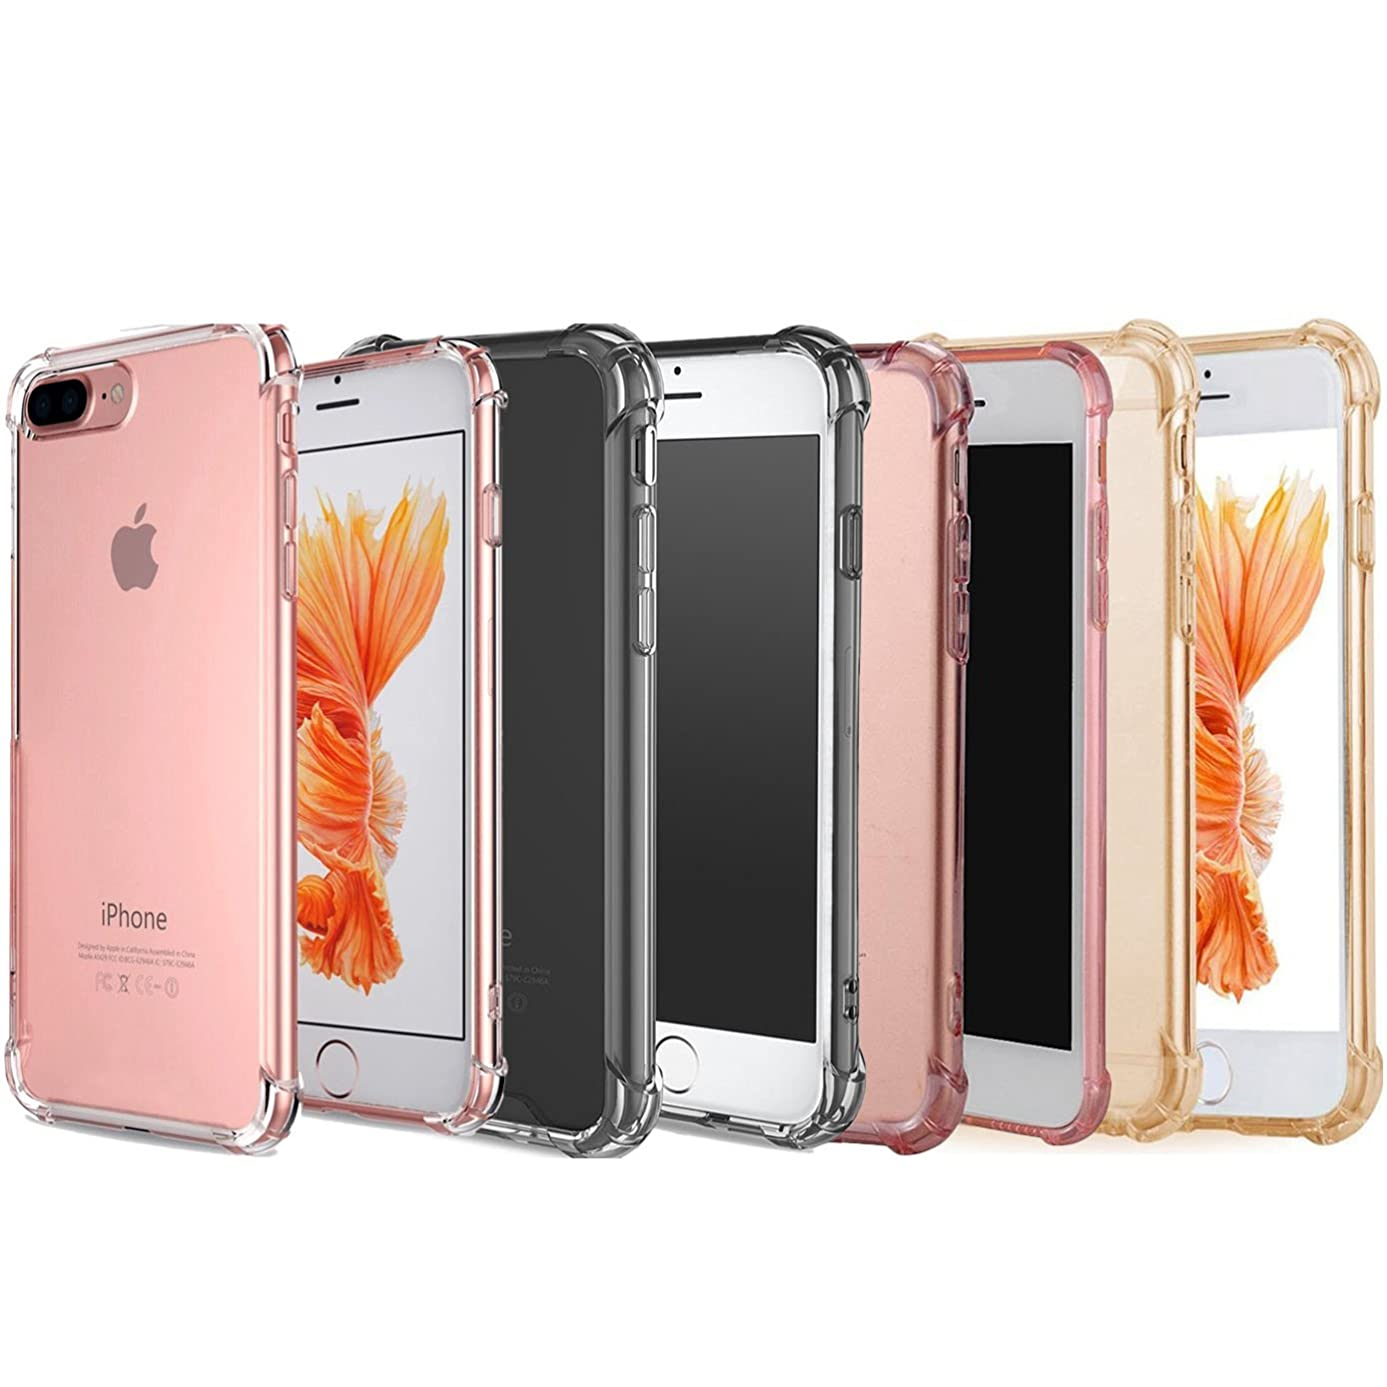 [4 Pack] iBarbe Protective Cover for iPhone7/8 Plus , Hard TPU Dust-Protection Scratch-Protection Drop-Protection Sleek Streamlined Protection Easy Installation Premium Sturdy Case